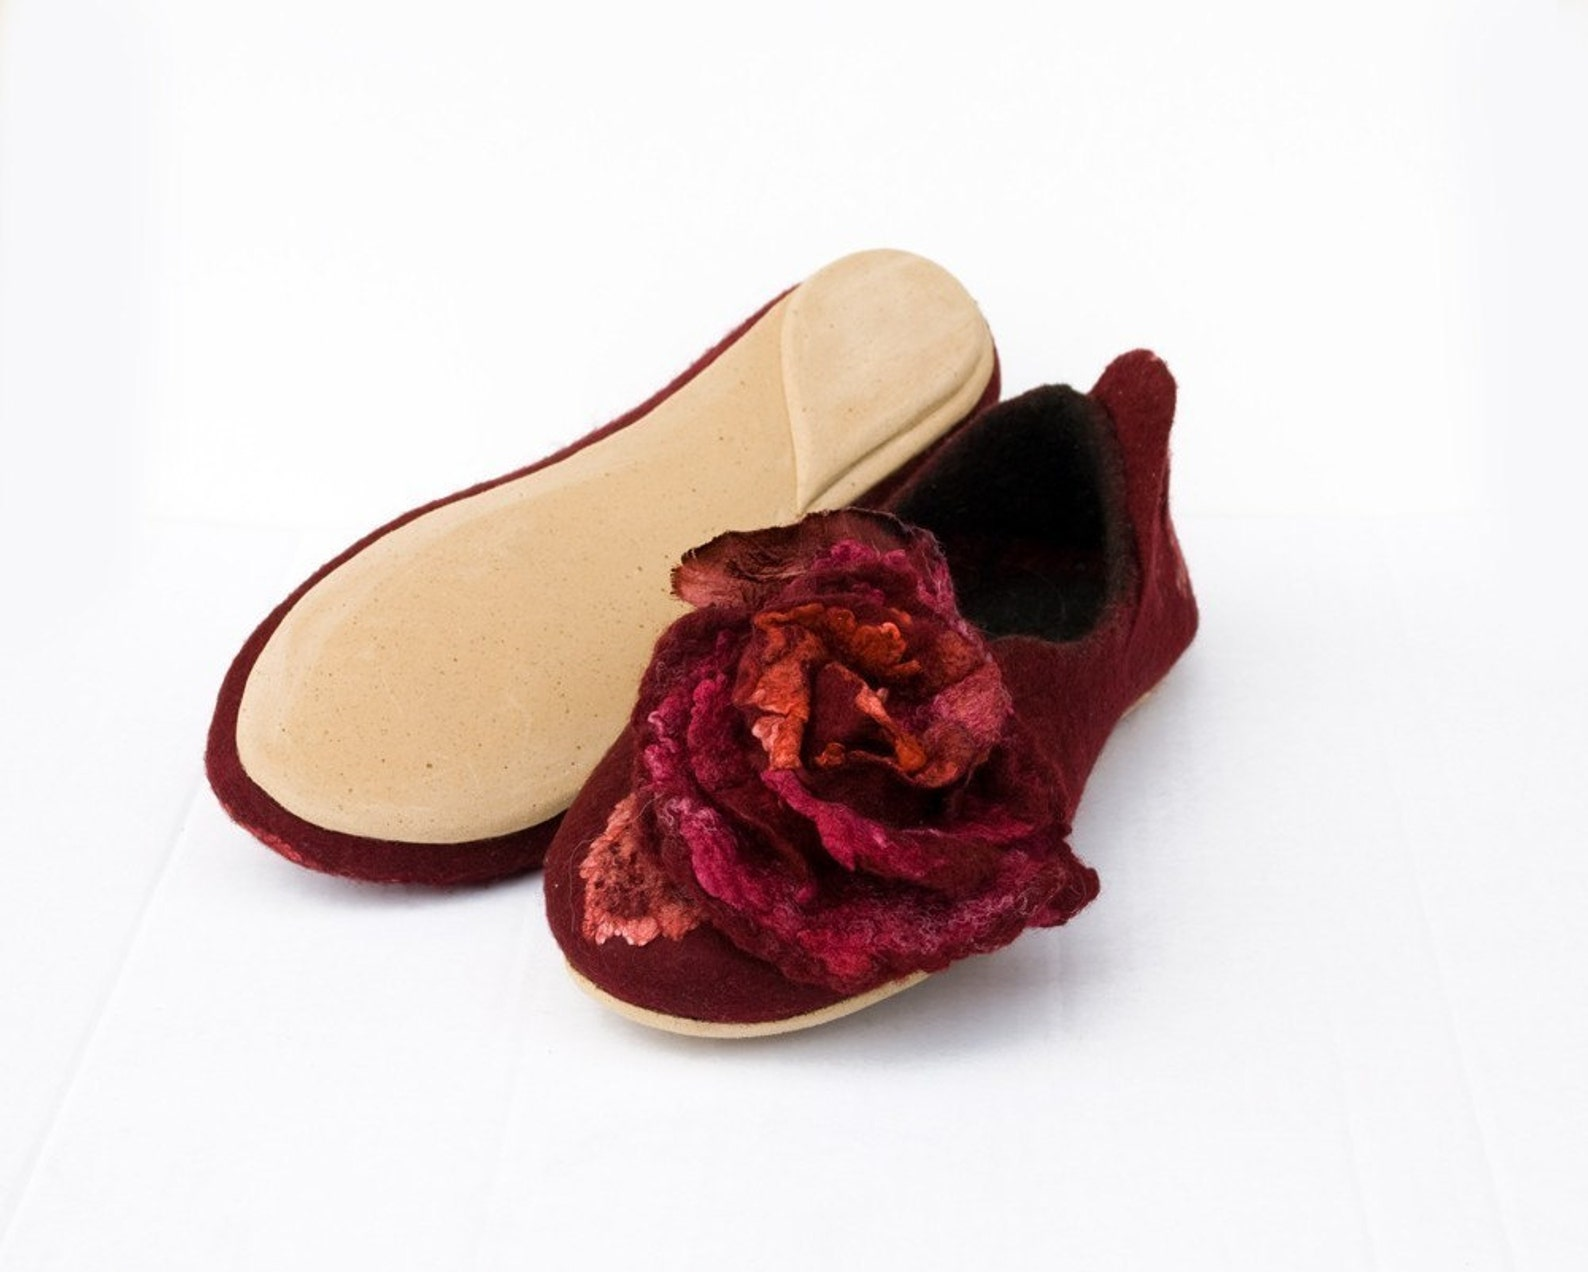 winter wedding handmade slippers with roses, handmade shoes, felt slippers flower, grandma gift ballet flats women slippers cozy